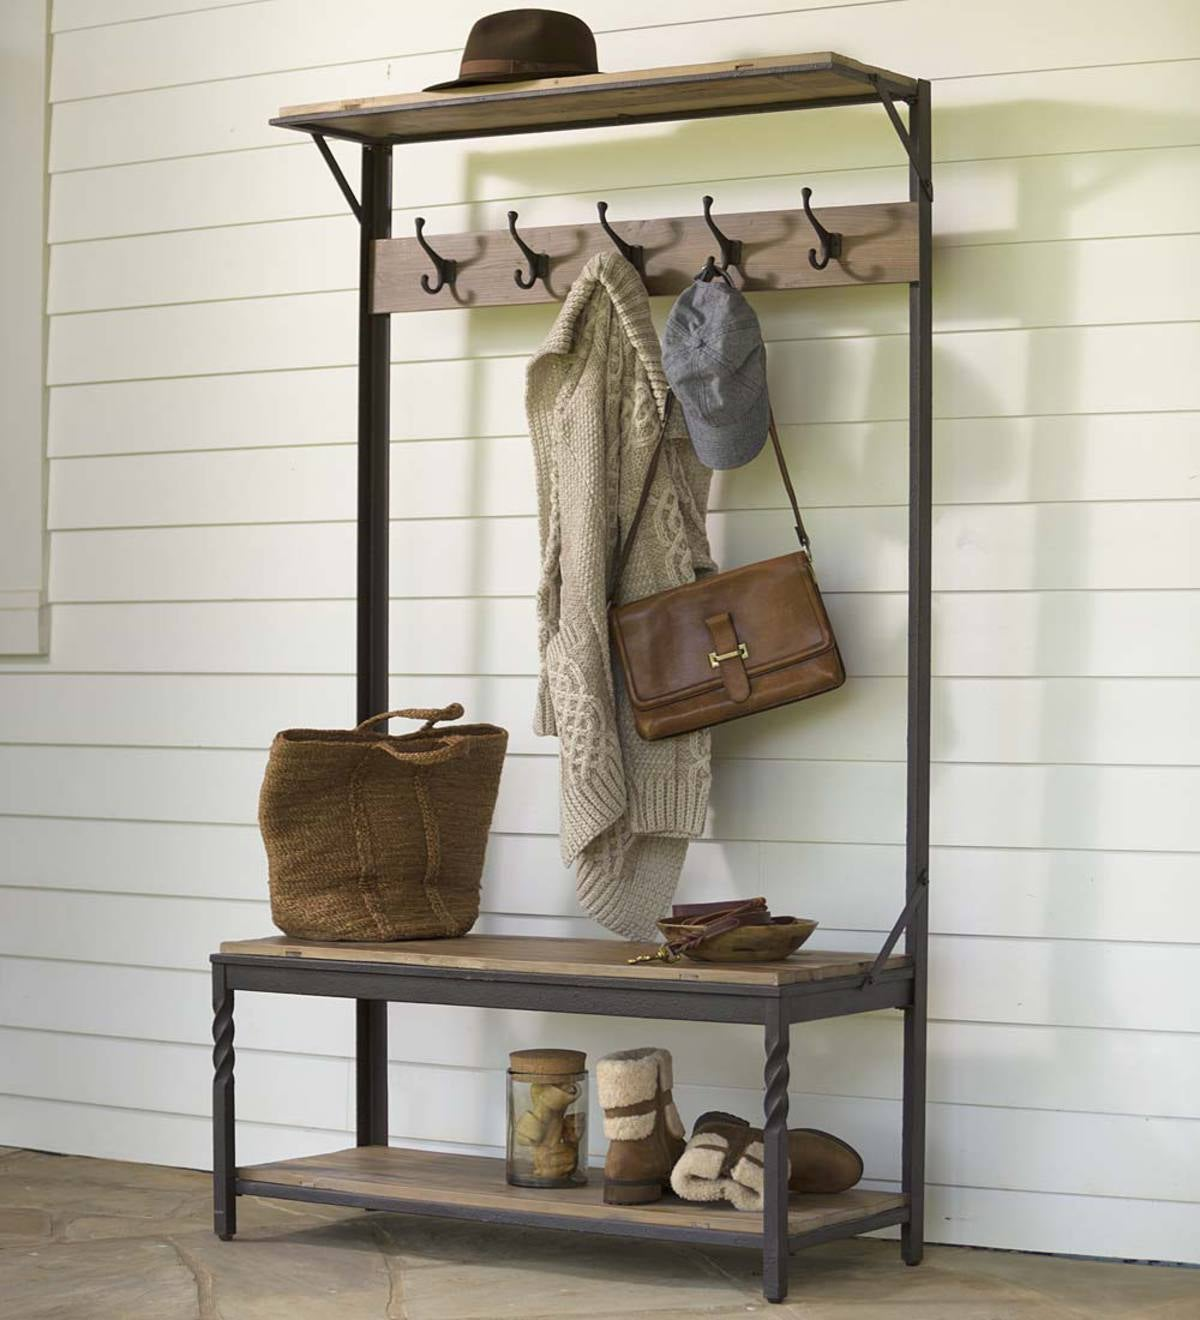 Deep Creek Coat Rack - Walnut